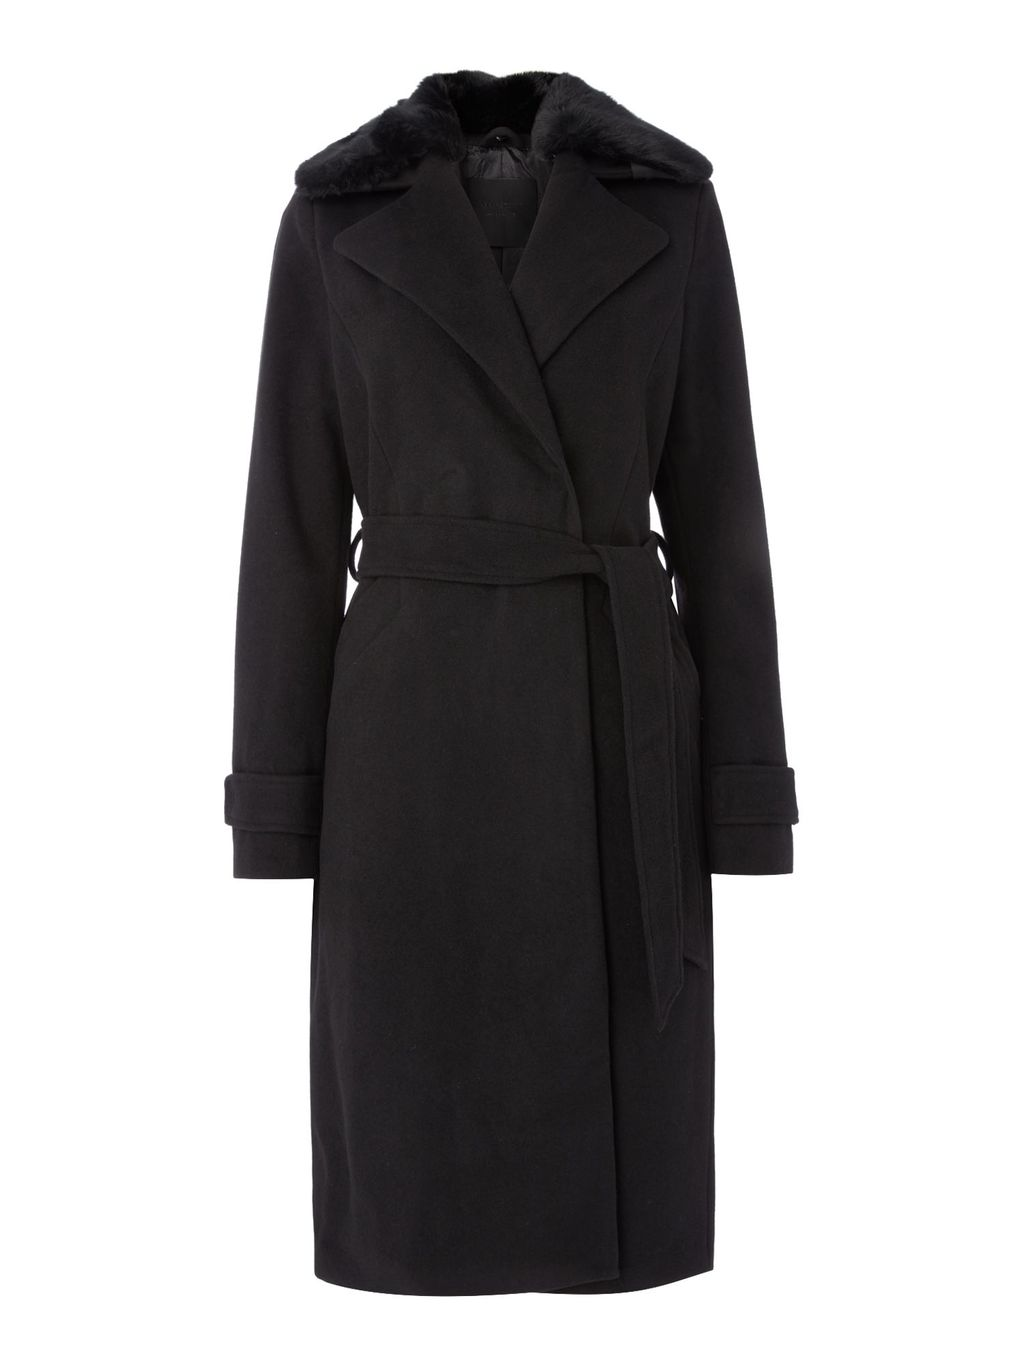 Long Wool Coat, Black - pattern: plain; style: wrap around; fit: slim fit; predominant colour: black; occasions: casual; length: ankle length; fibres: wool - 100%; waist detail: belted waist/tie at waist/drawstring; sleeve length: long sleeve; sleeve style: standard; collar: fur; collar break: medium; pattern type: fabric; texture group: woven bulky/heavy; embellishment: fur; season: a/w 2016; wardrobe: highlight